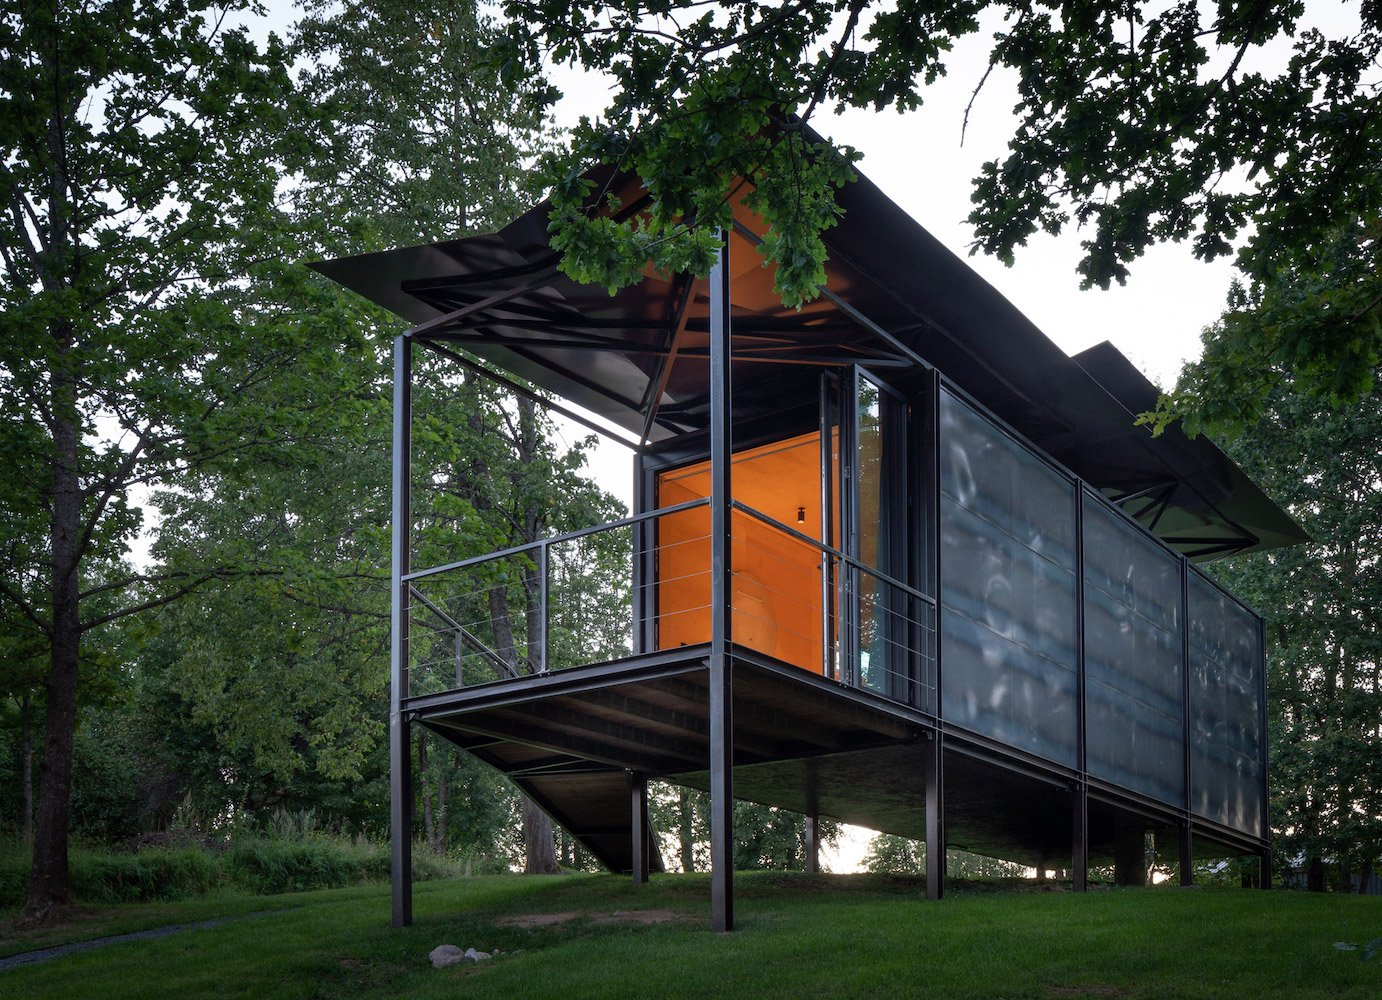 Home on the move: the portable Lithuanian cabin that you can set up anywhere